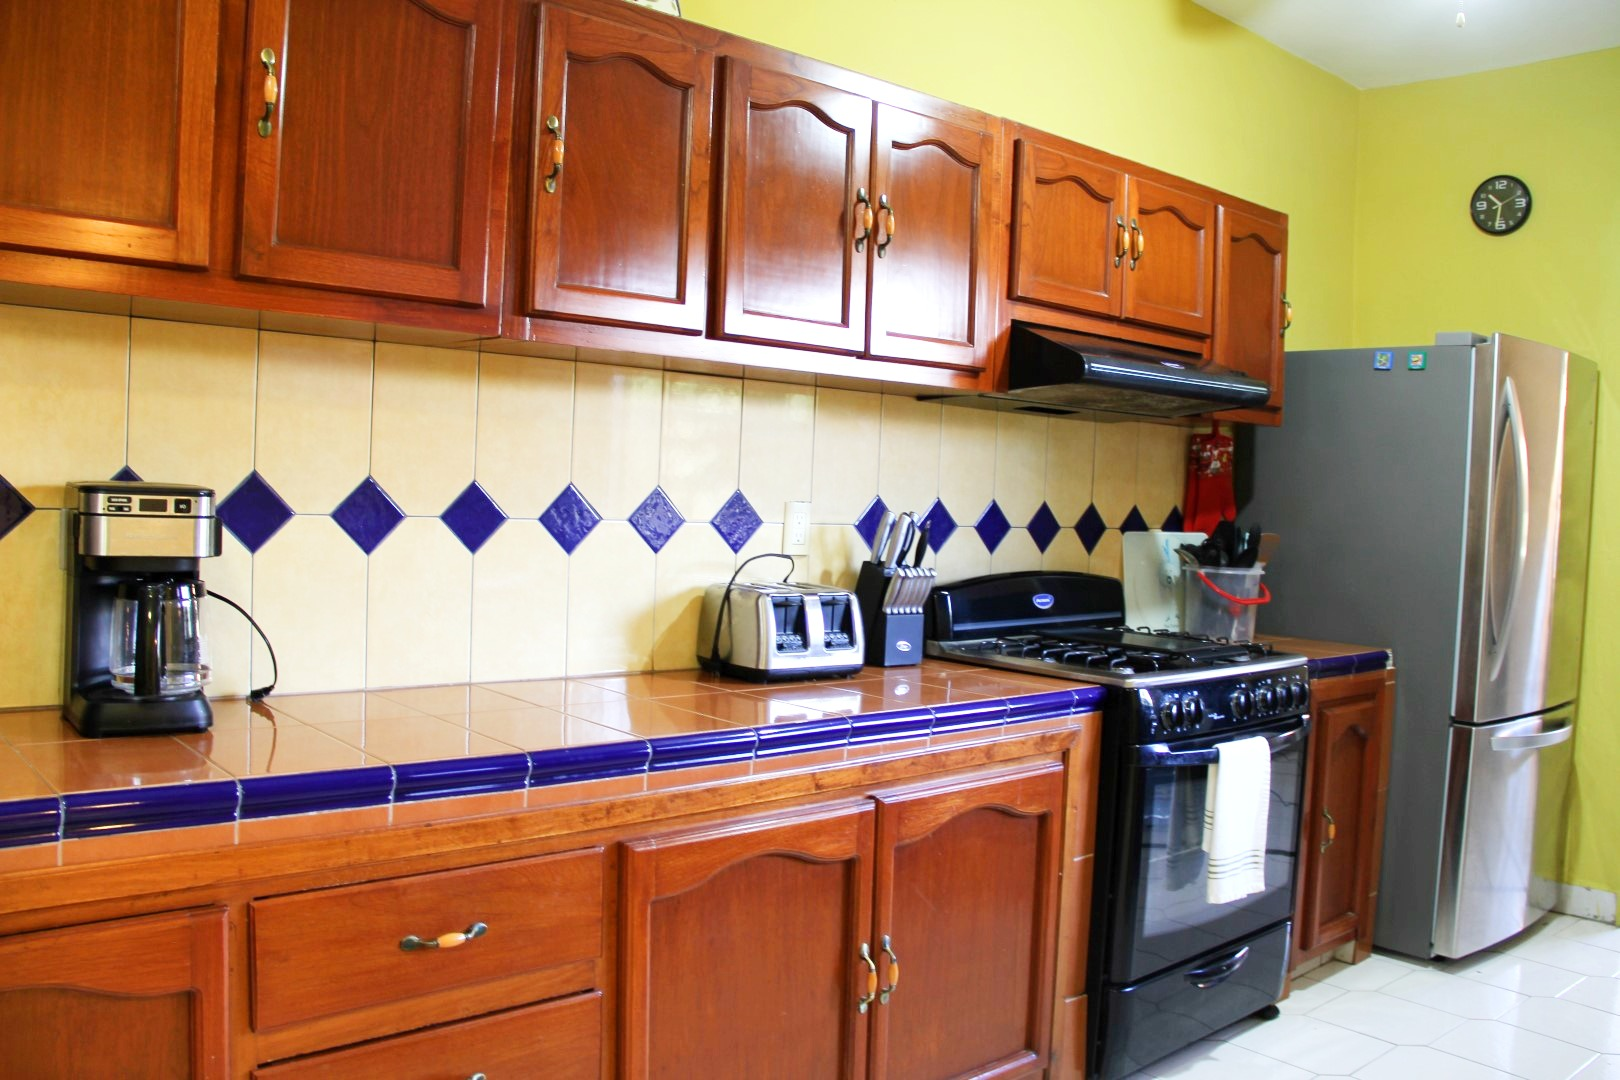 Full-size appliances and very well stocked kitchen.